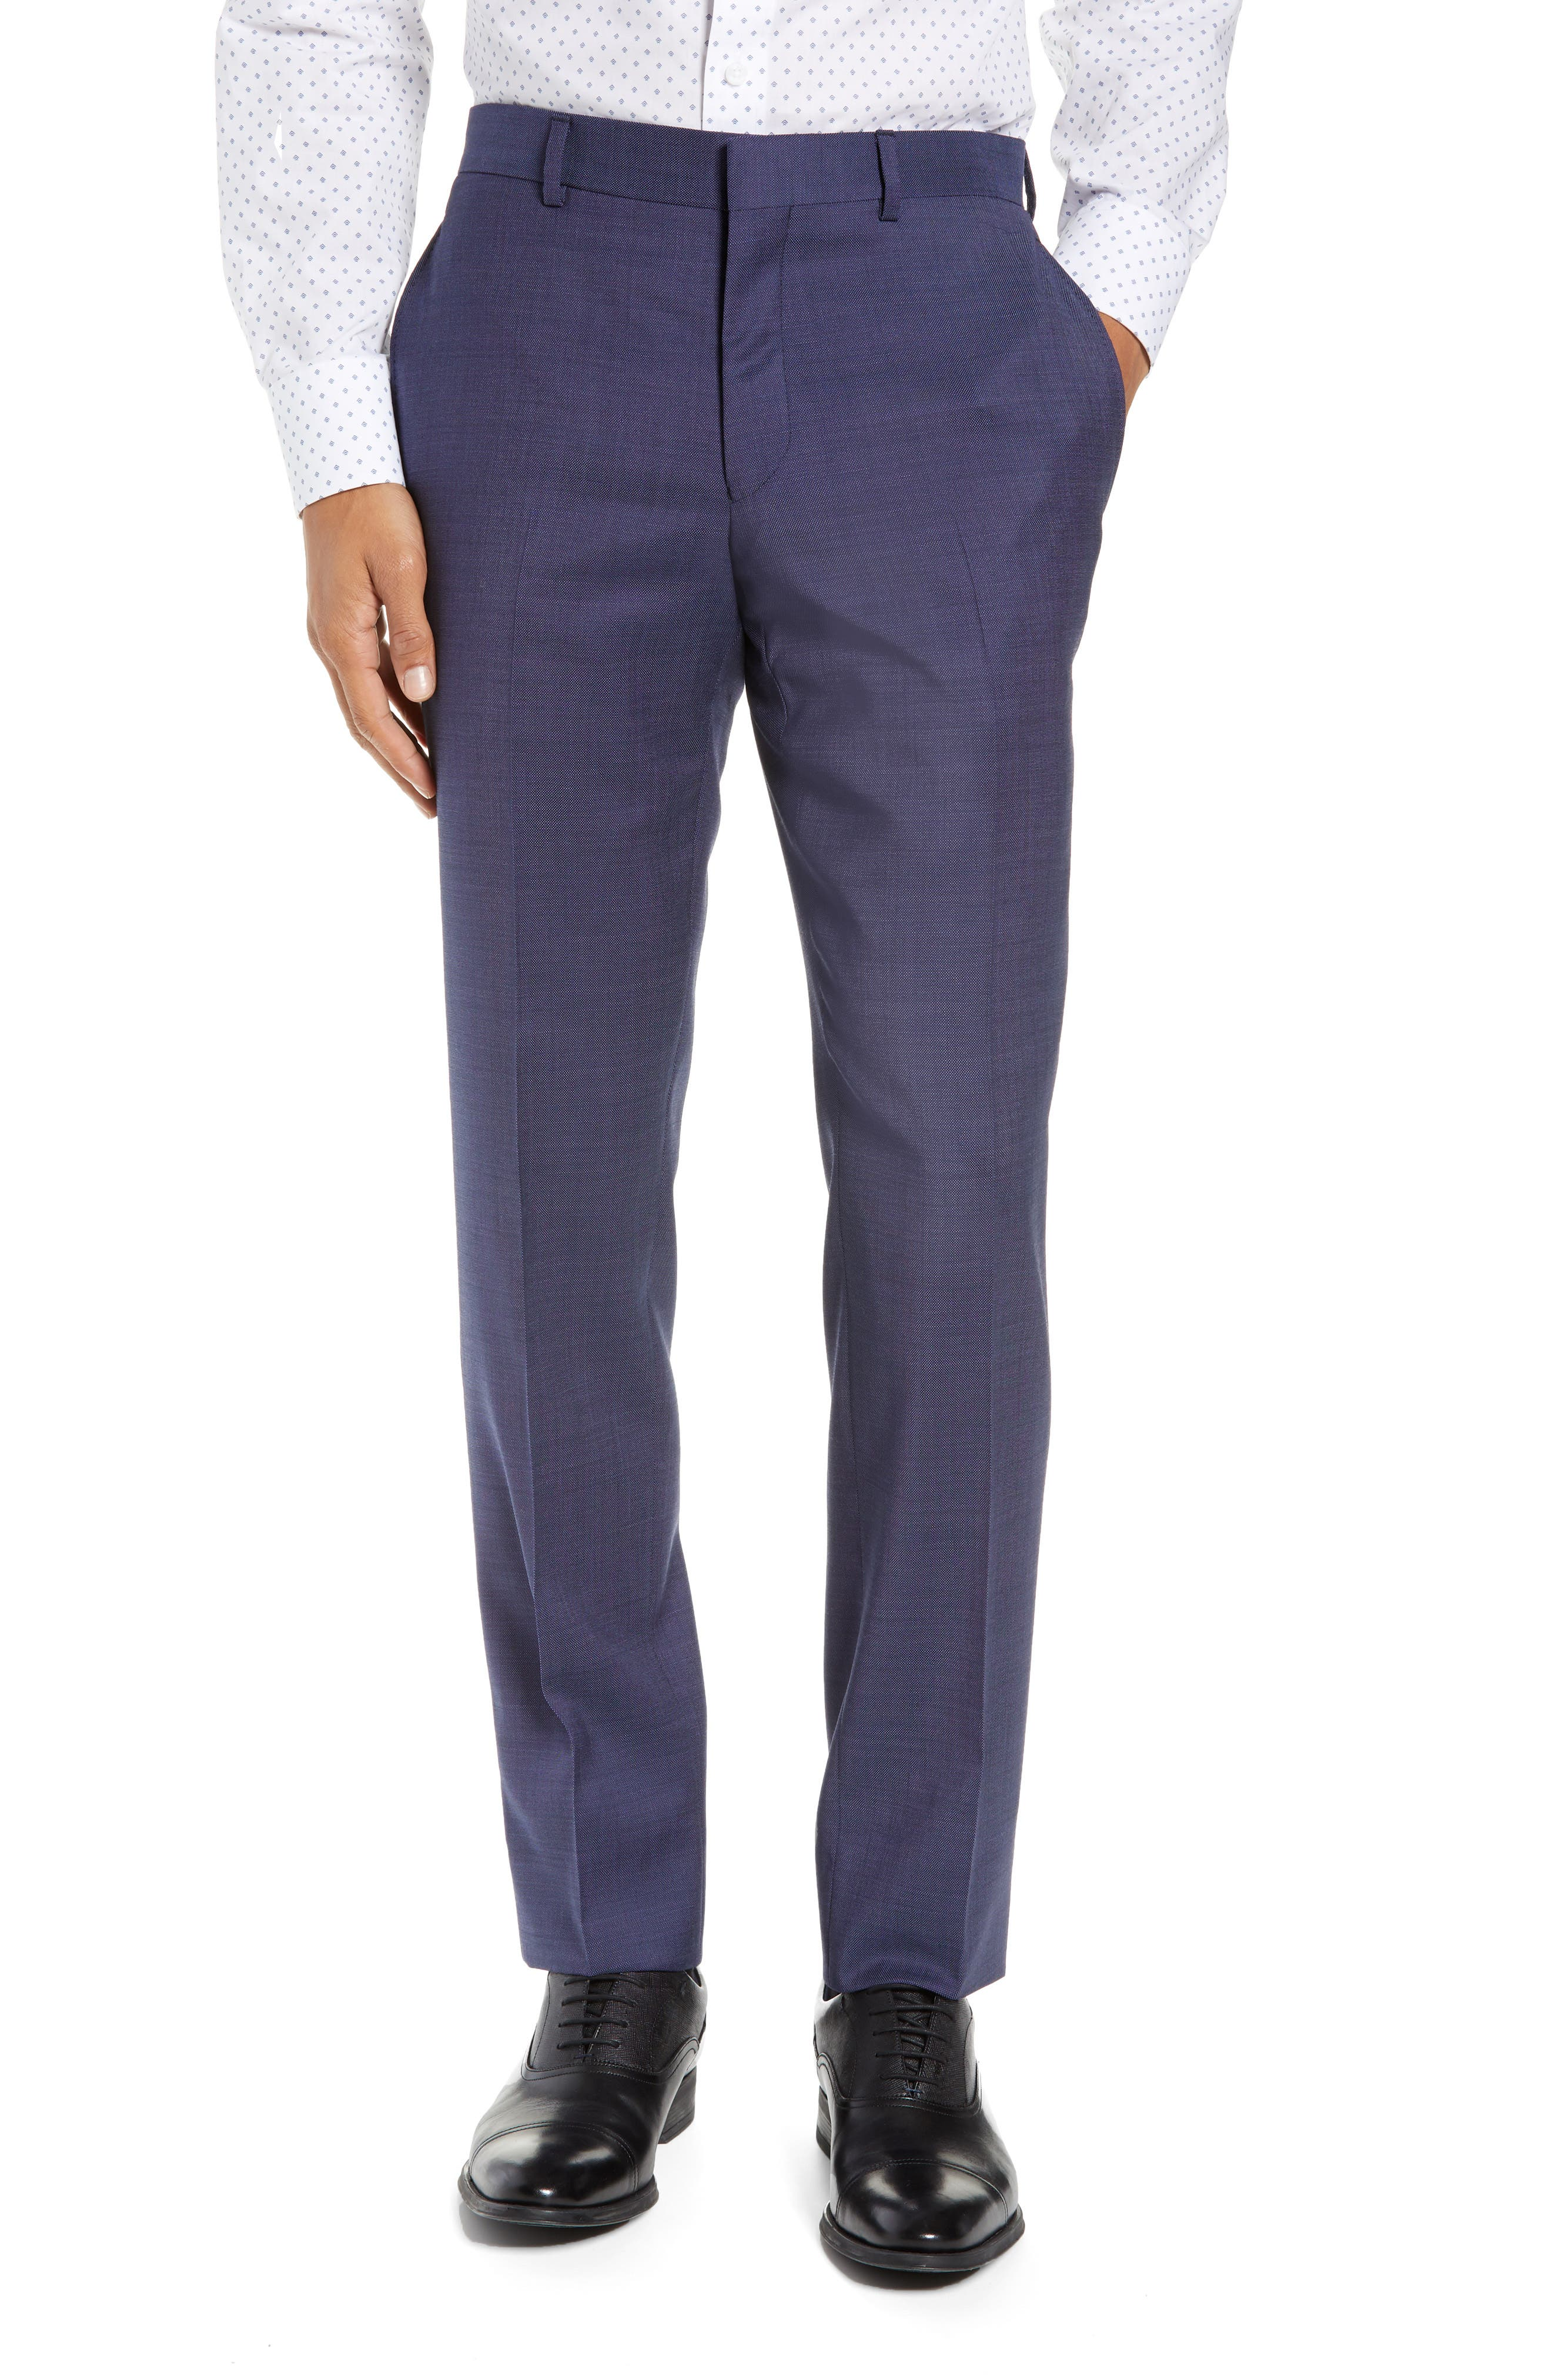 TED BAKER LONDON, Roger Slim Fit Solid Wool Suit, Alternate thumbnail 6, color, BLUE